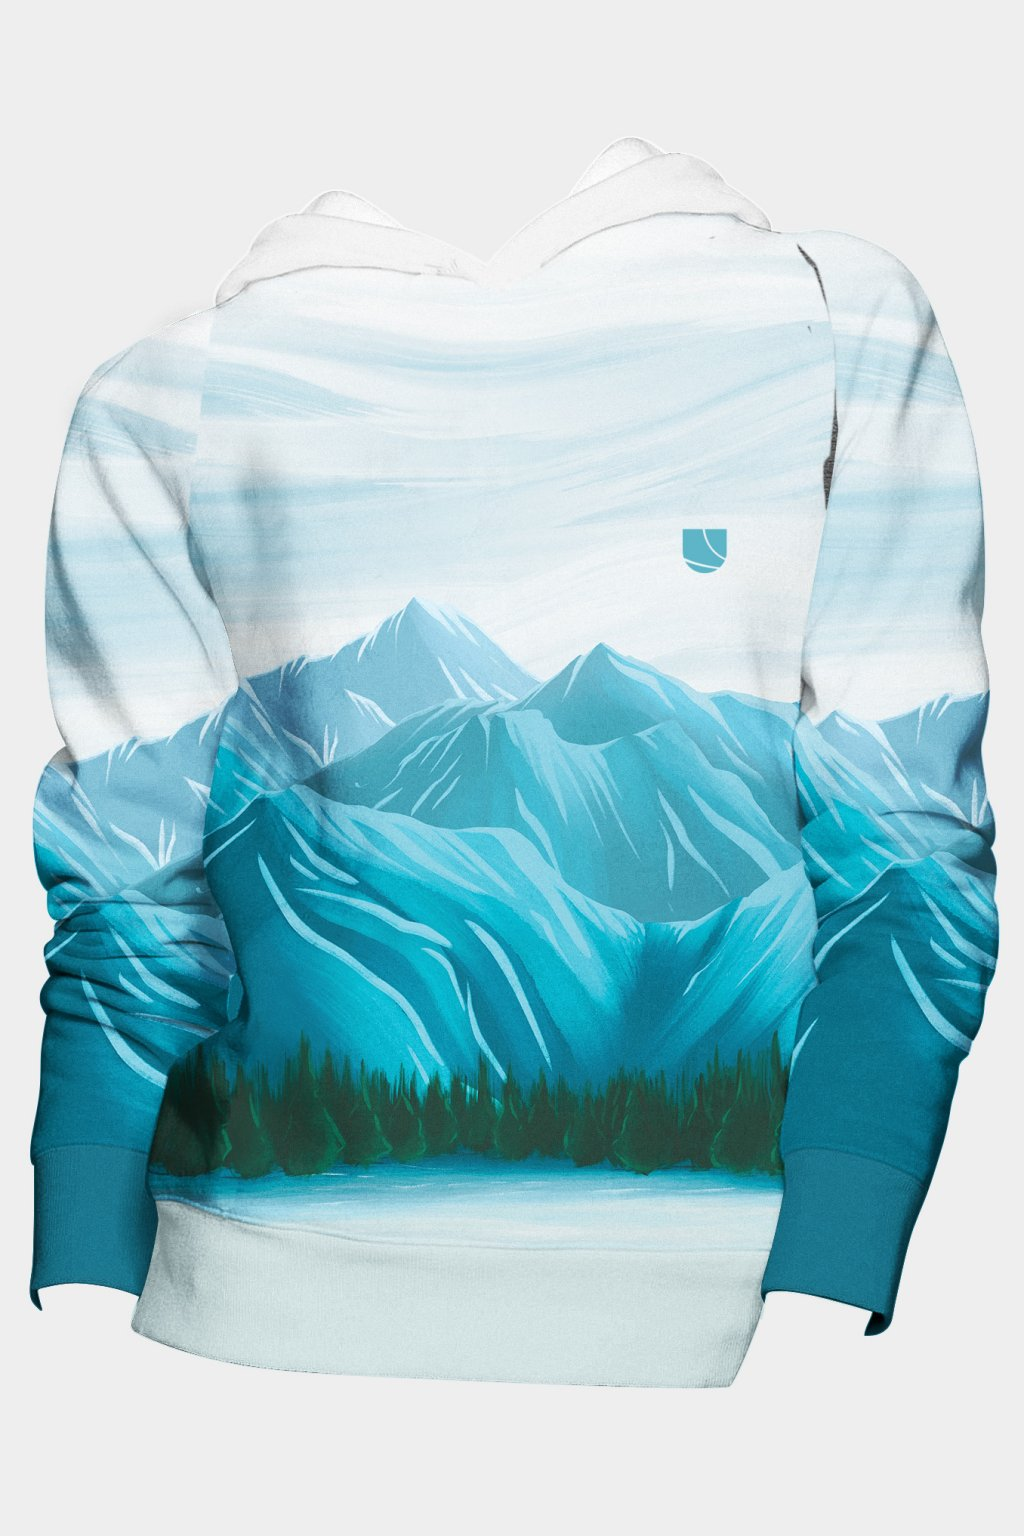 mikina winter mountain fullprint front by utopy